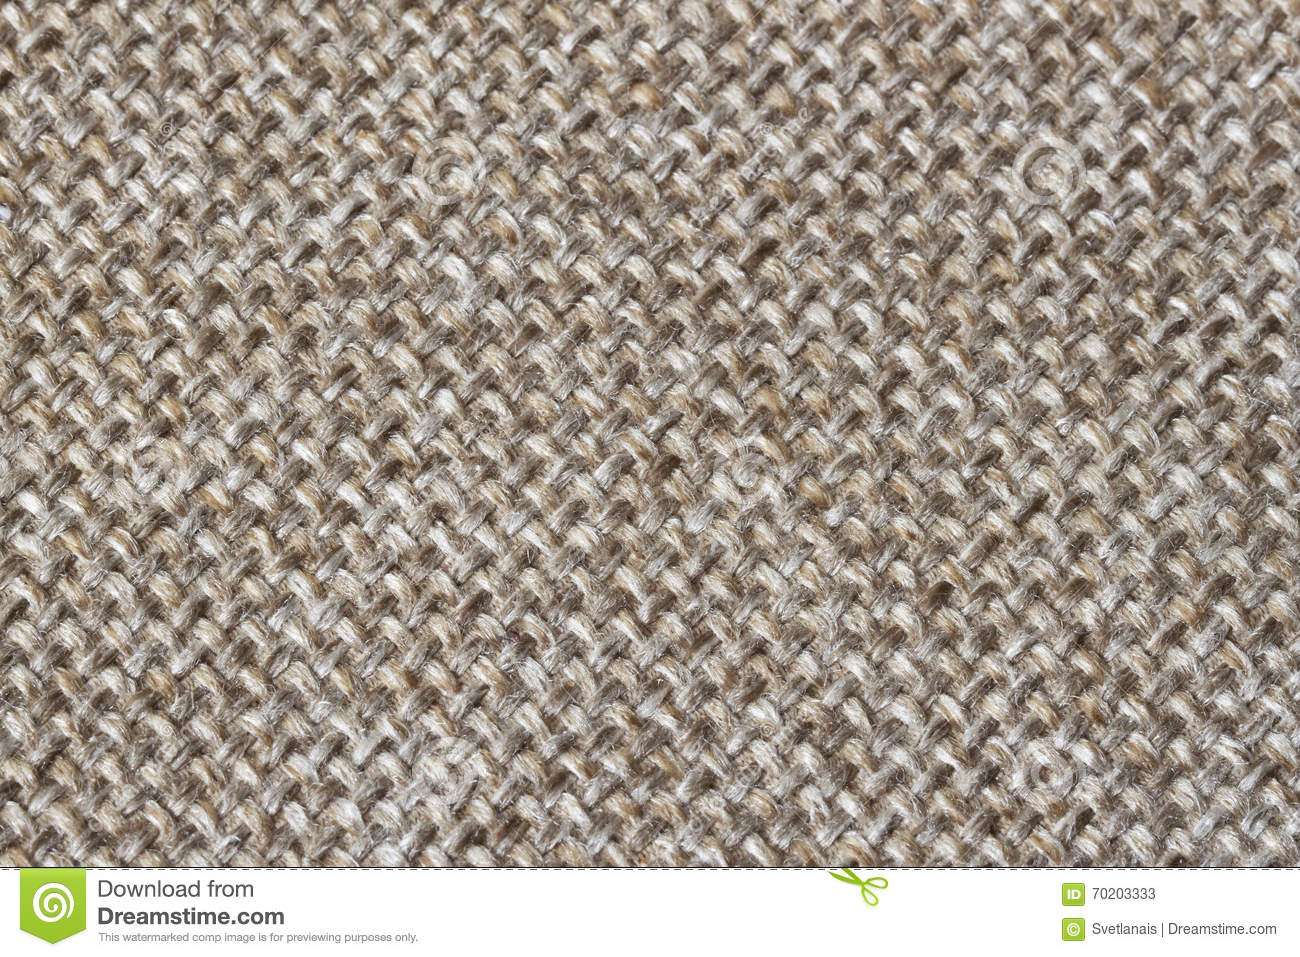 burlap fabric texture jute sack cloth background sackcloth stock photo. Black Bedroom Furniture Sets. Home Design Ideas